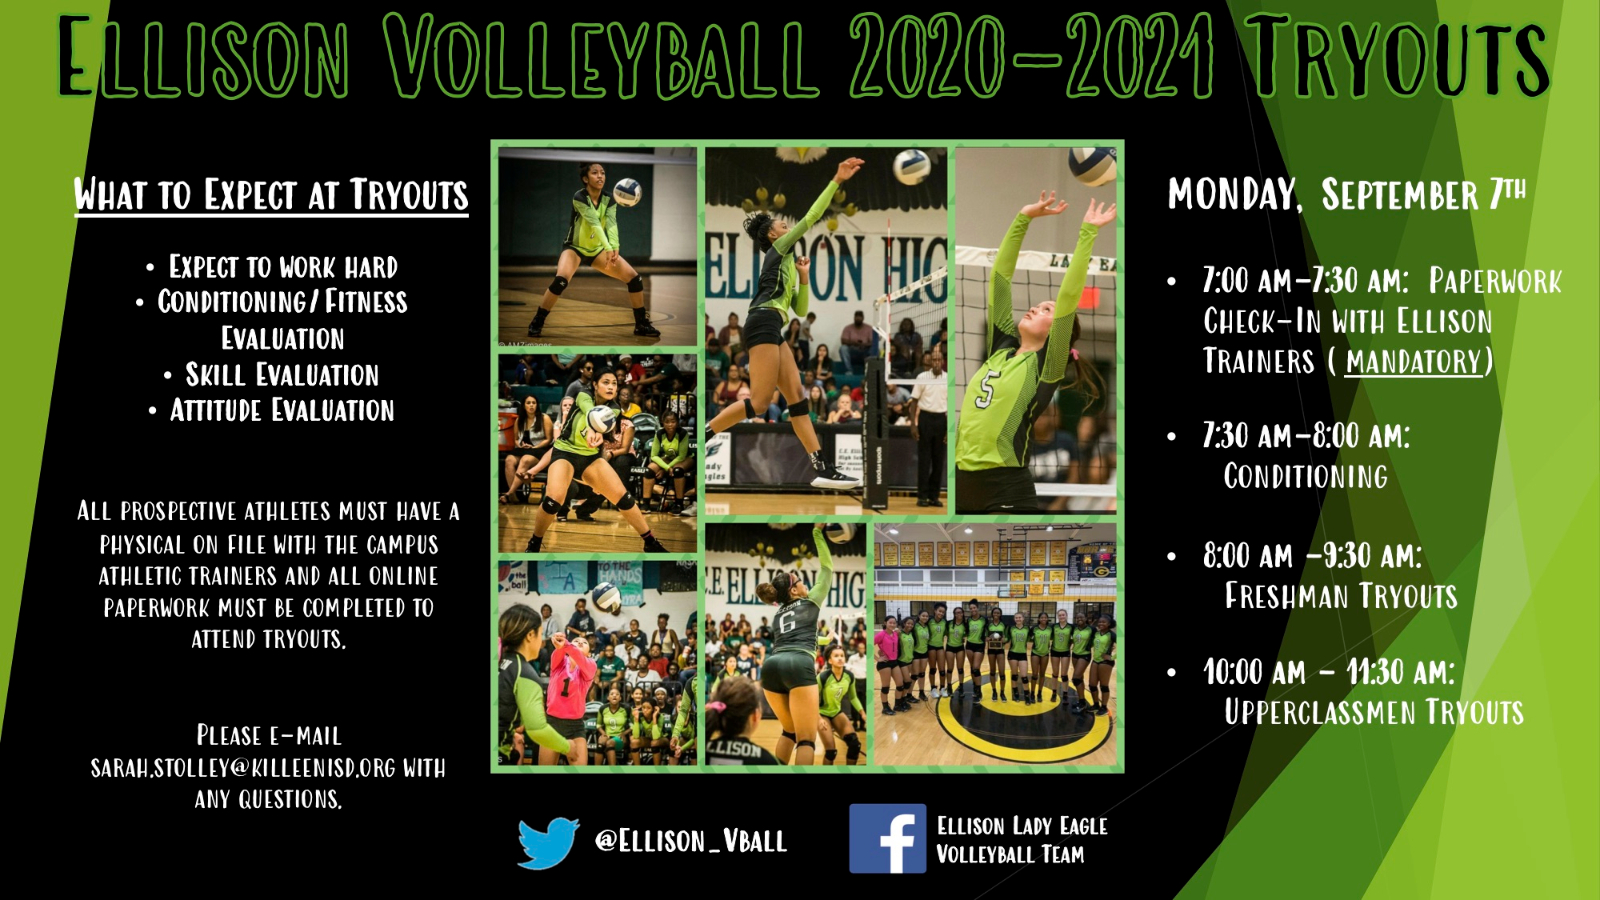 2020 Ellison Volleyball Tryouts